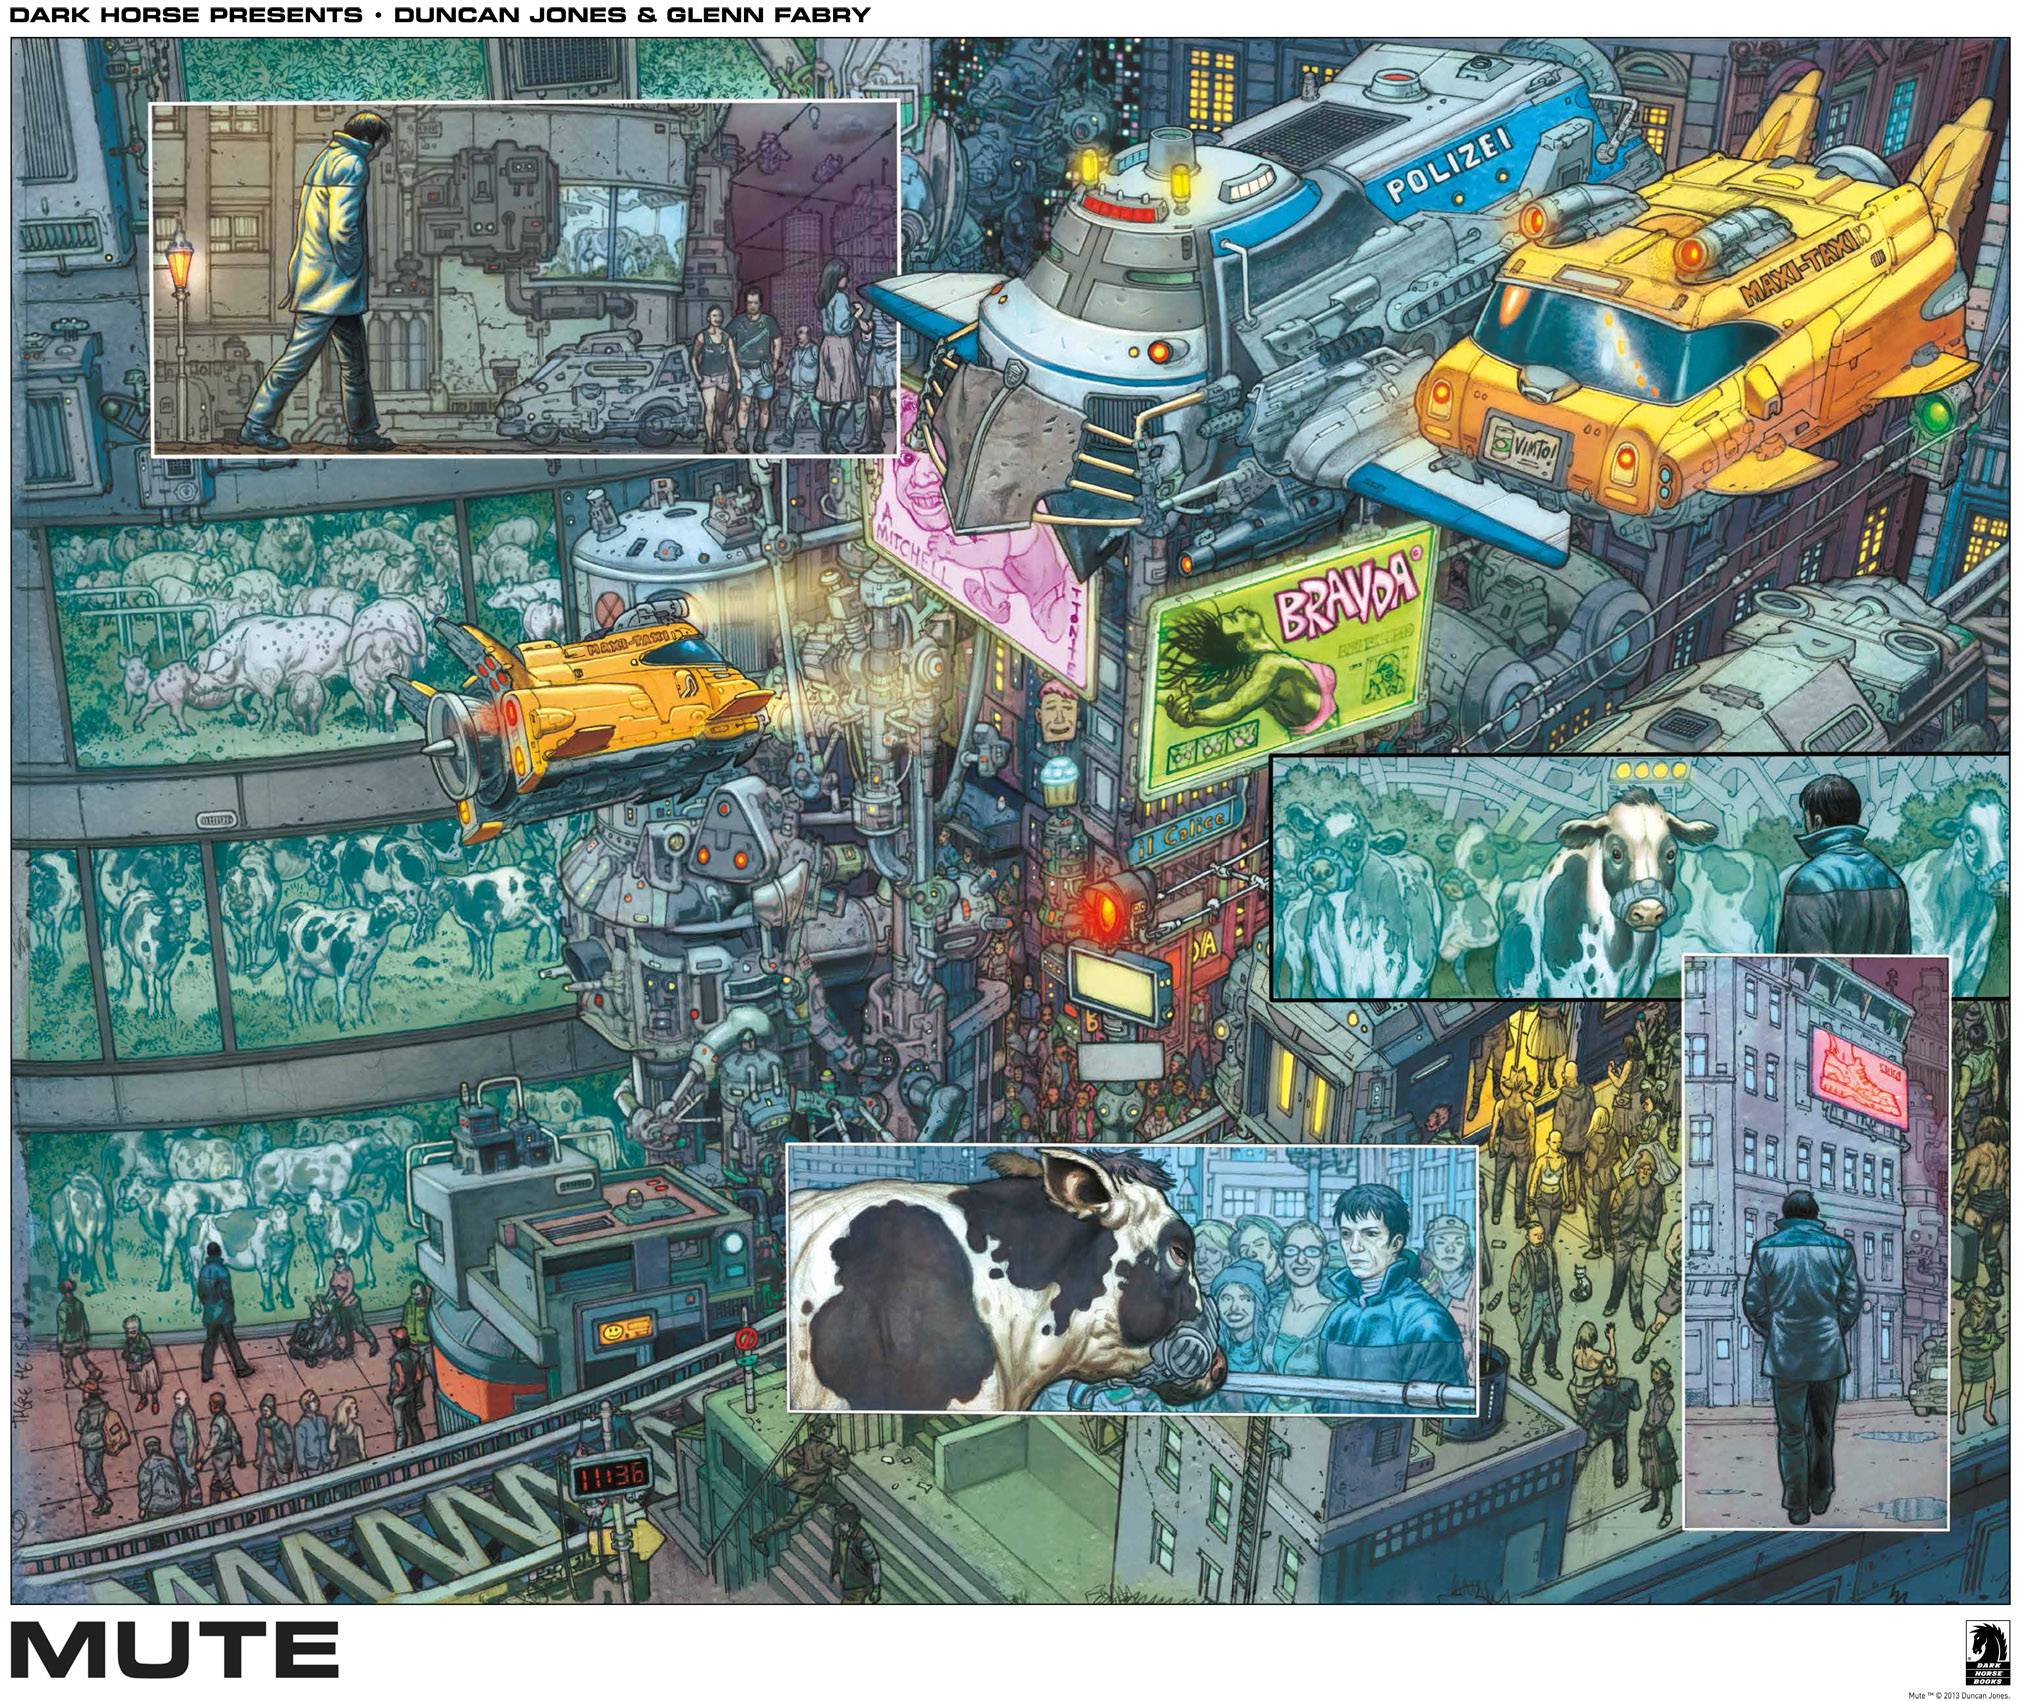 Dark Horse Presents – Duncan Jones & Glenn Fabry – MUTE